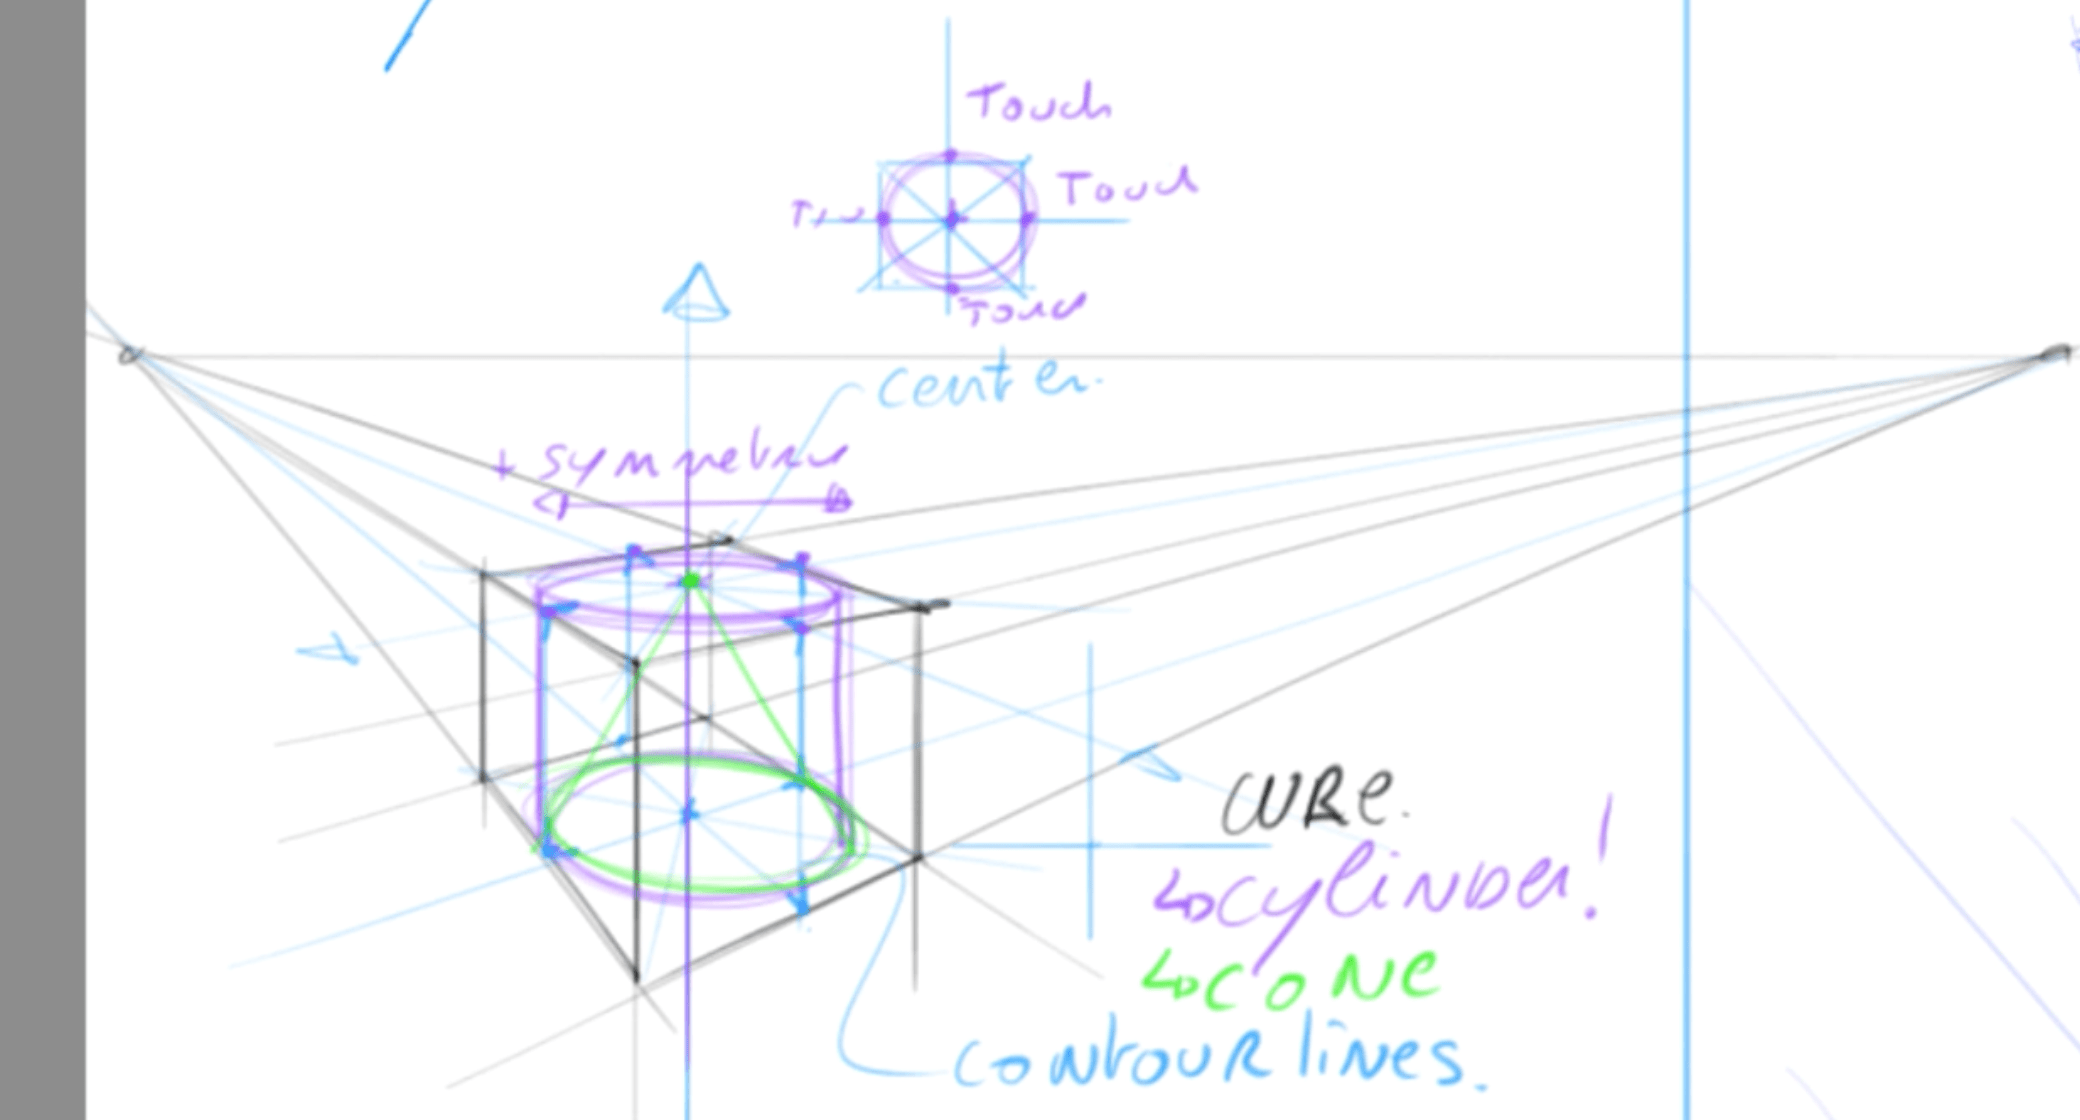 How to draw basic 3d volumes - cone - cube - cylinder - the design sketchbook - t